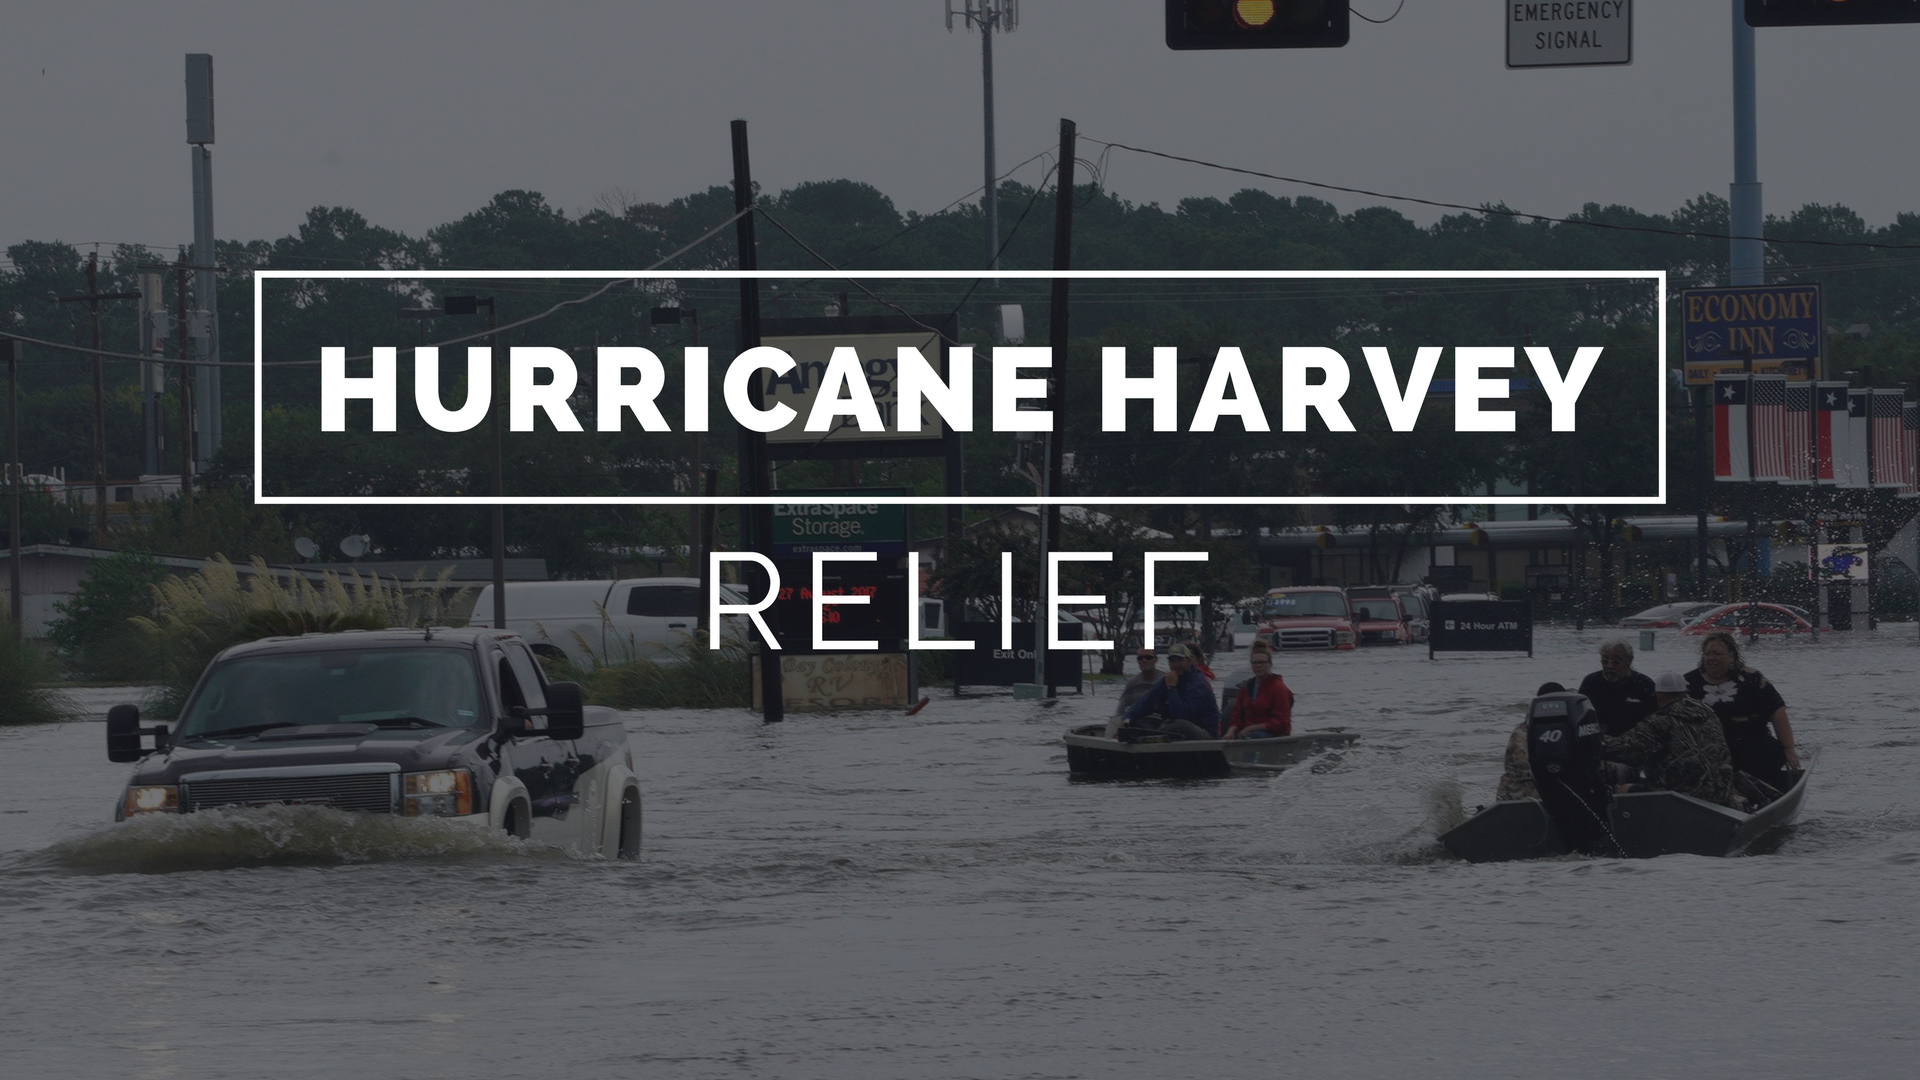 Hurricane harvey relief background